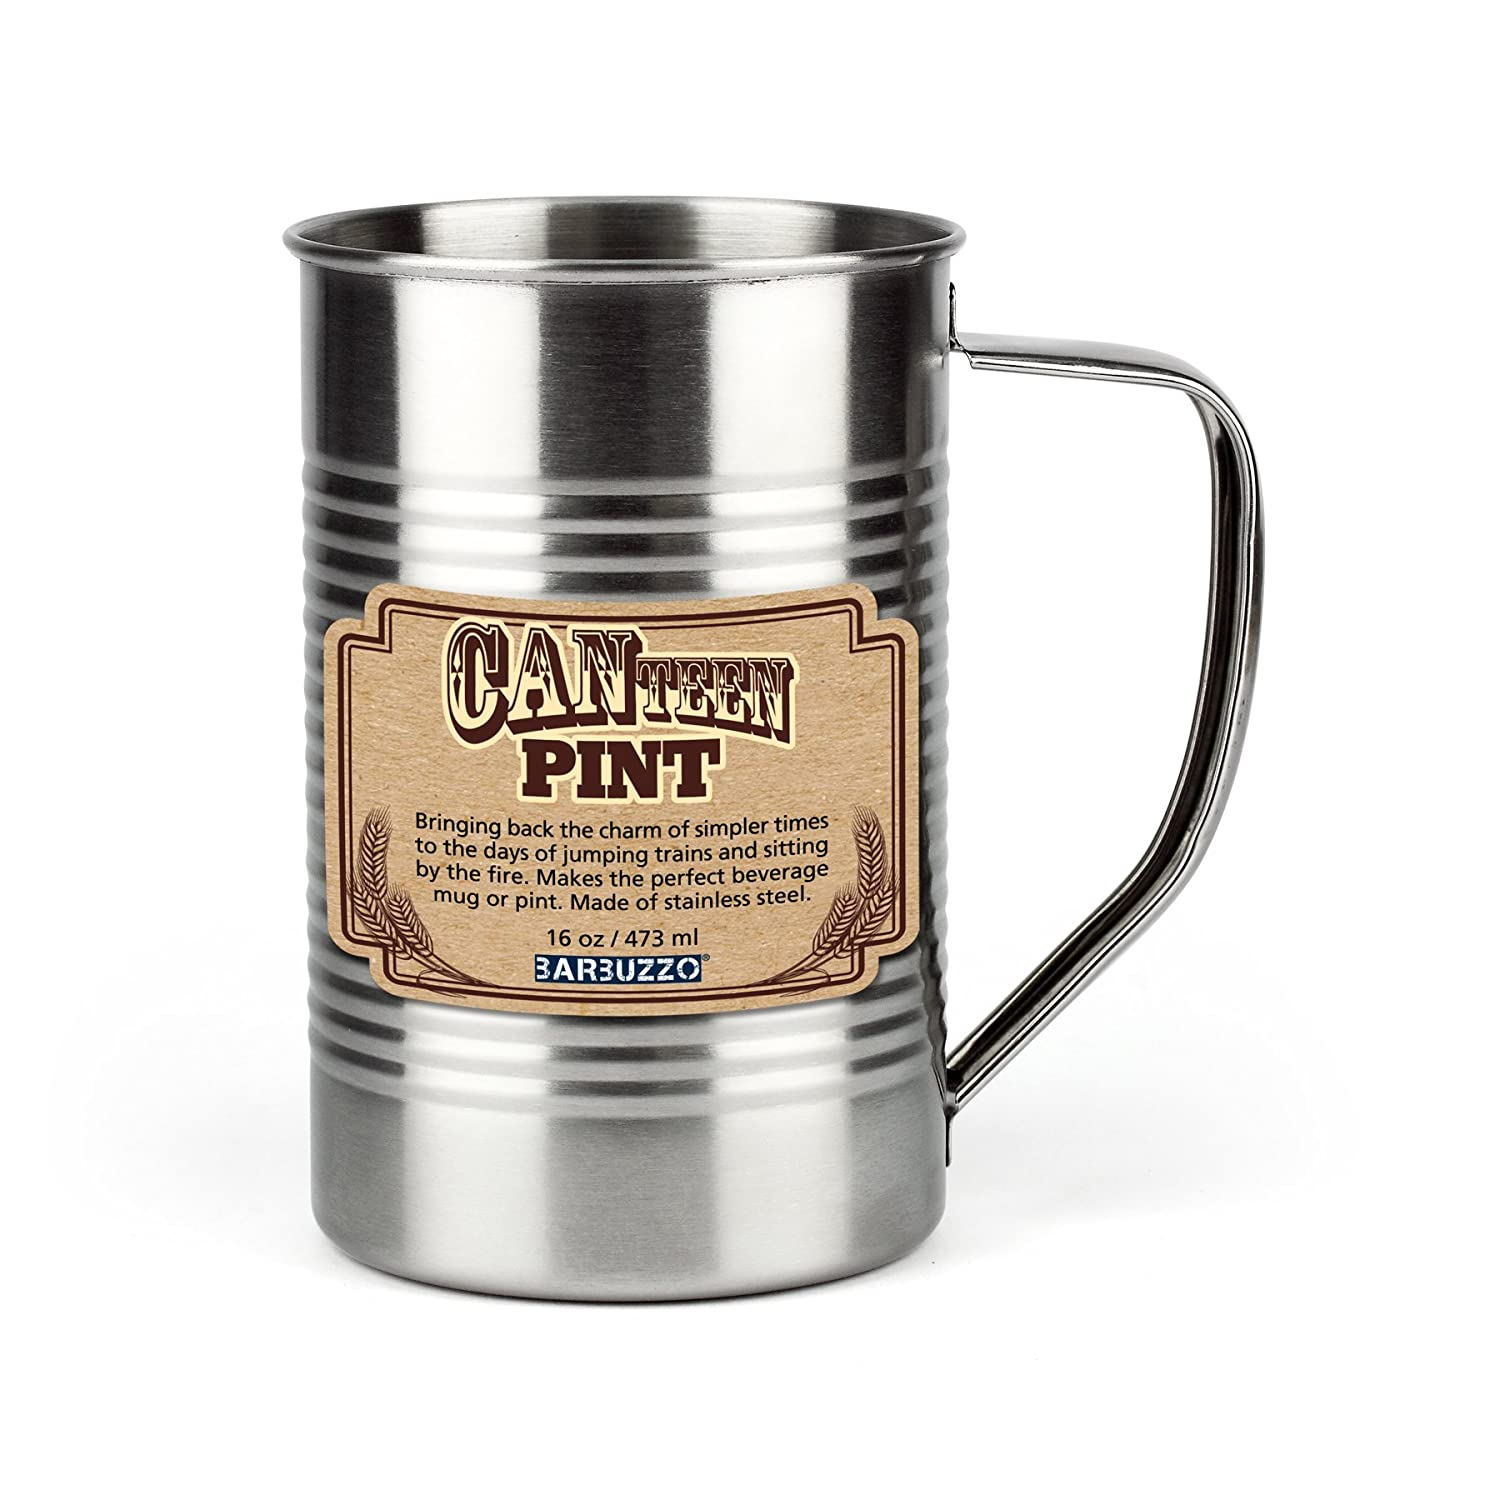 Barbuzzo CANteen Stainless Steel Pint Glass, 16 Ounces - Go Vintage, Go Retro, Go Crazy with this Fun and Durable Drinking Item that Goes Anywhere You and Your Friends Want to Have a Drink UTU3GI0053